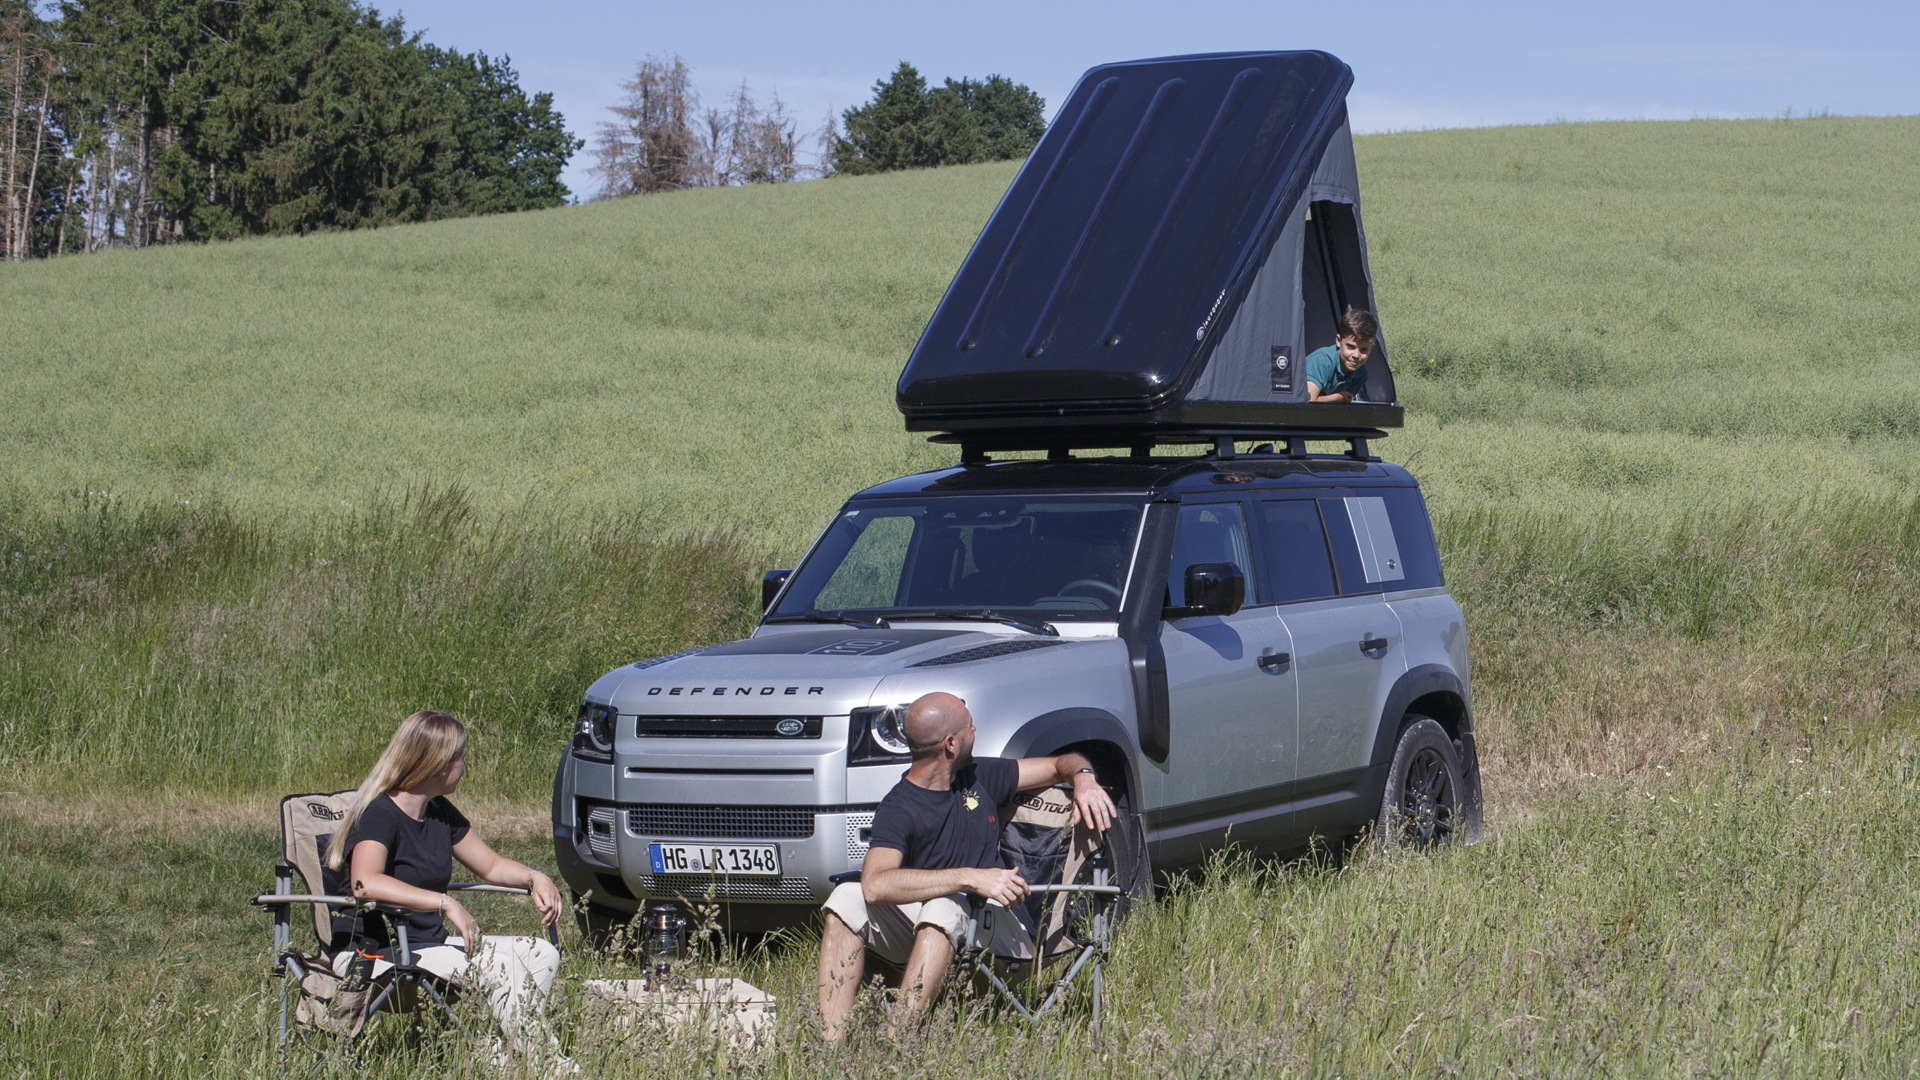 2020 Land Rover Defender 110 with Autohome roof tent